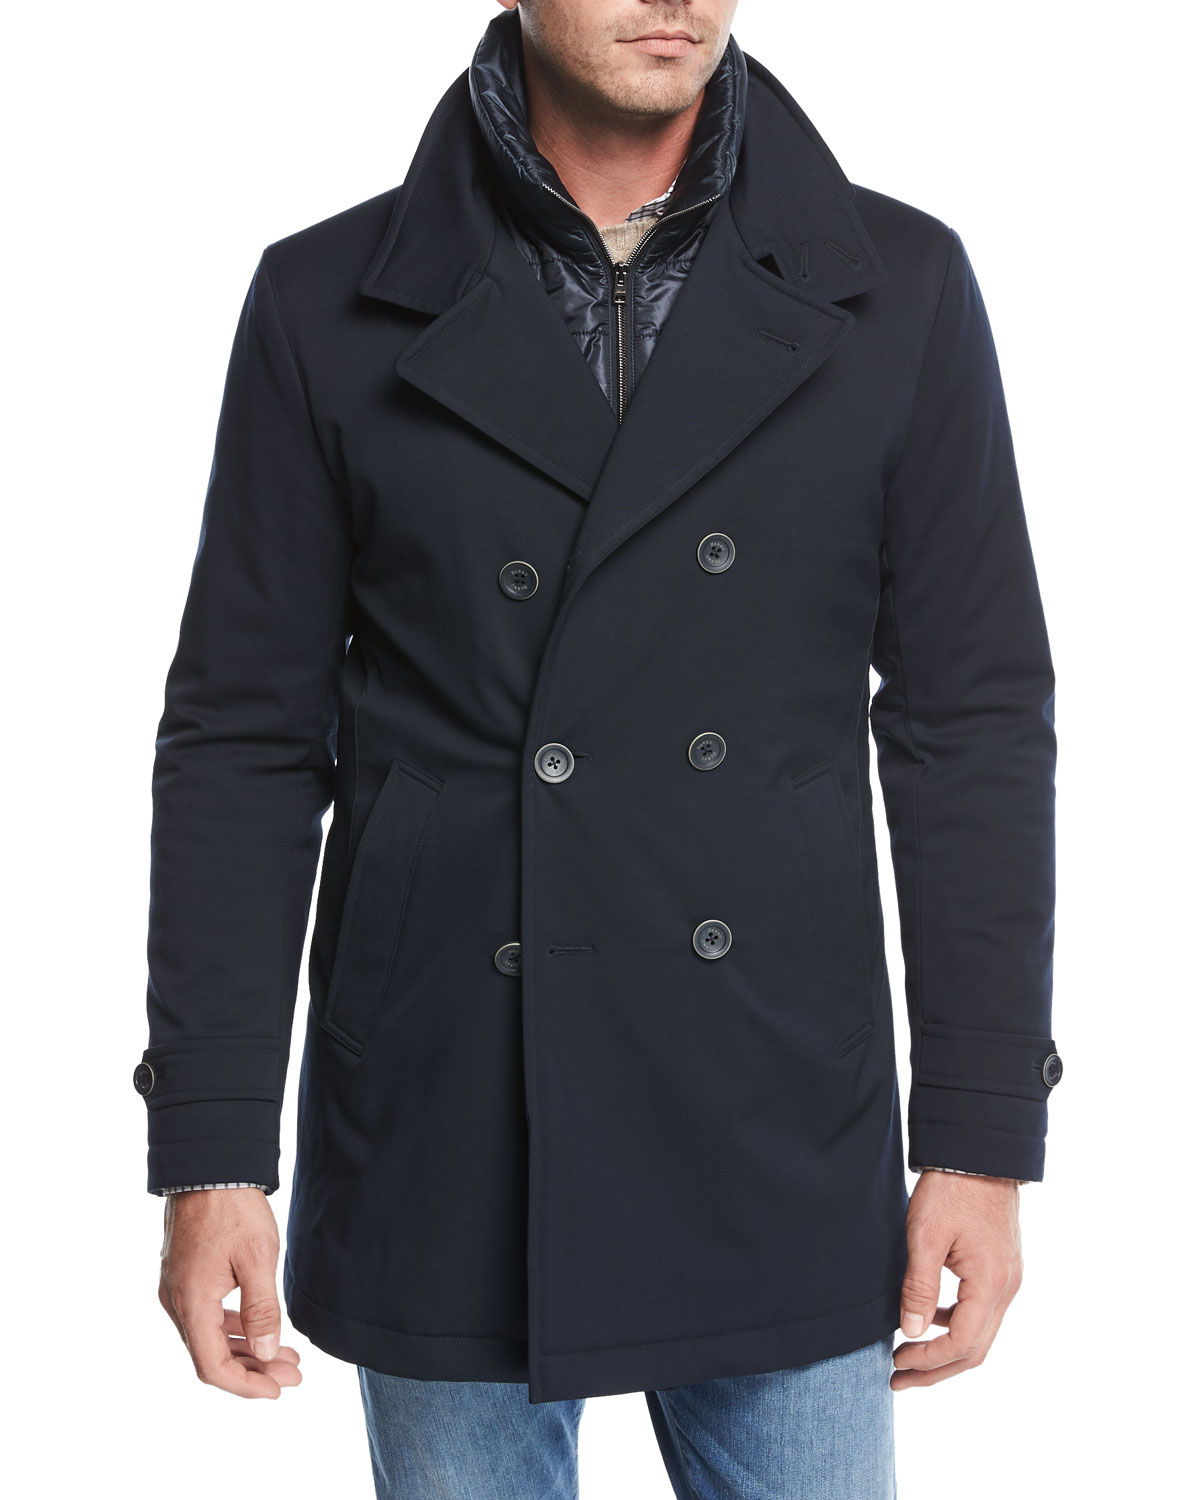 detailing ever popular crazy price Storm System Double-Breasted Peacoat